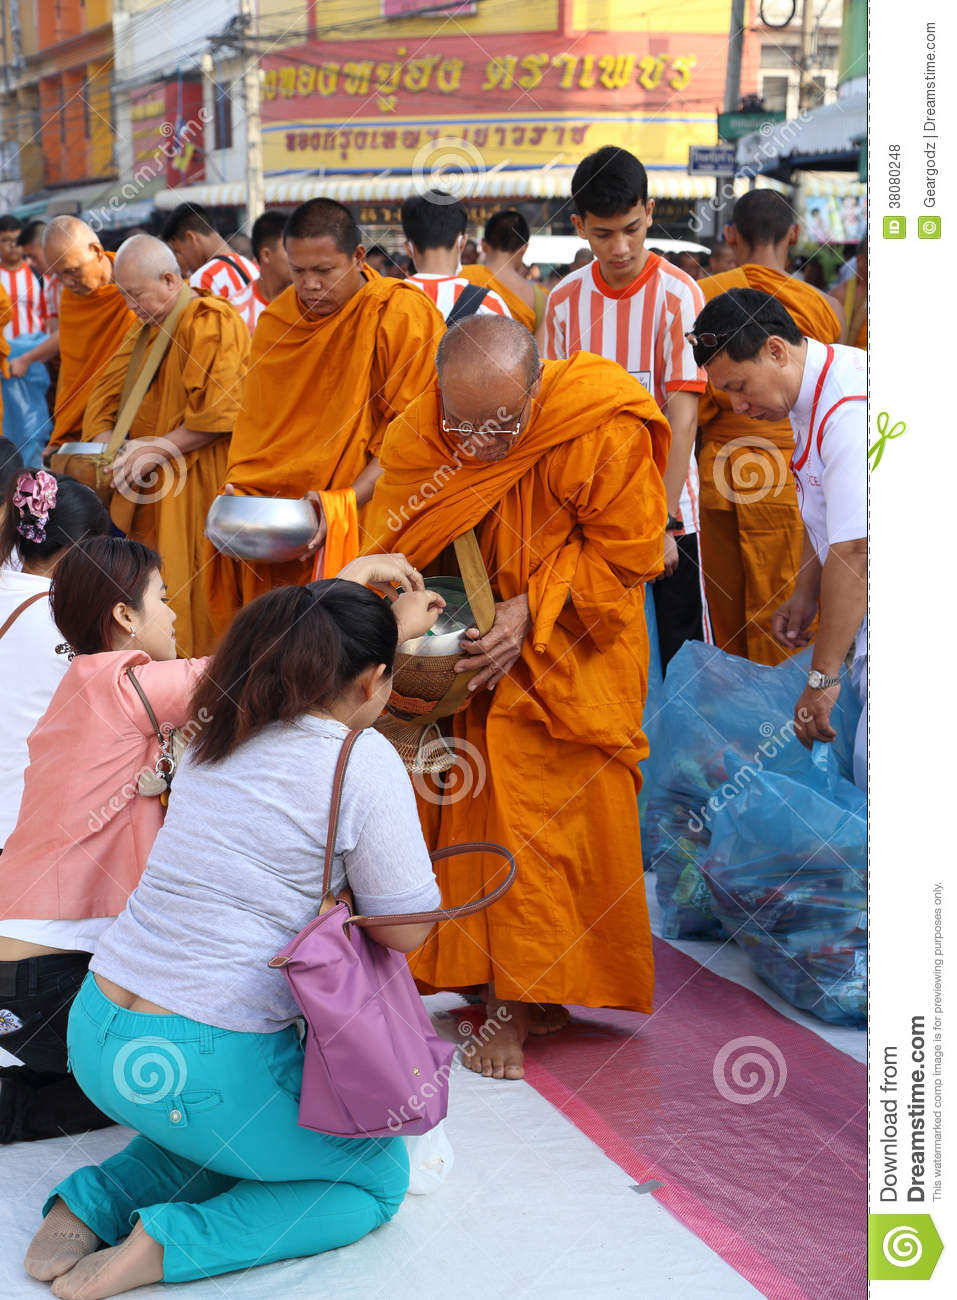 nakhon ratchasima buddhist personals Visit locanto free classifieds and find over 86,000 ads near you for jobs nakhon ratchasima nakhon the personals, pets.